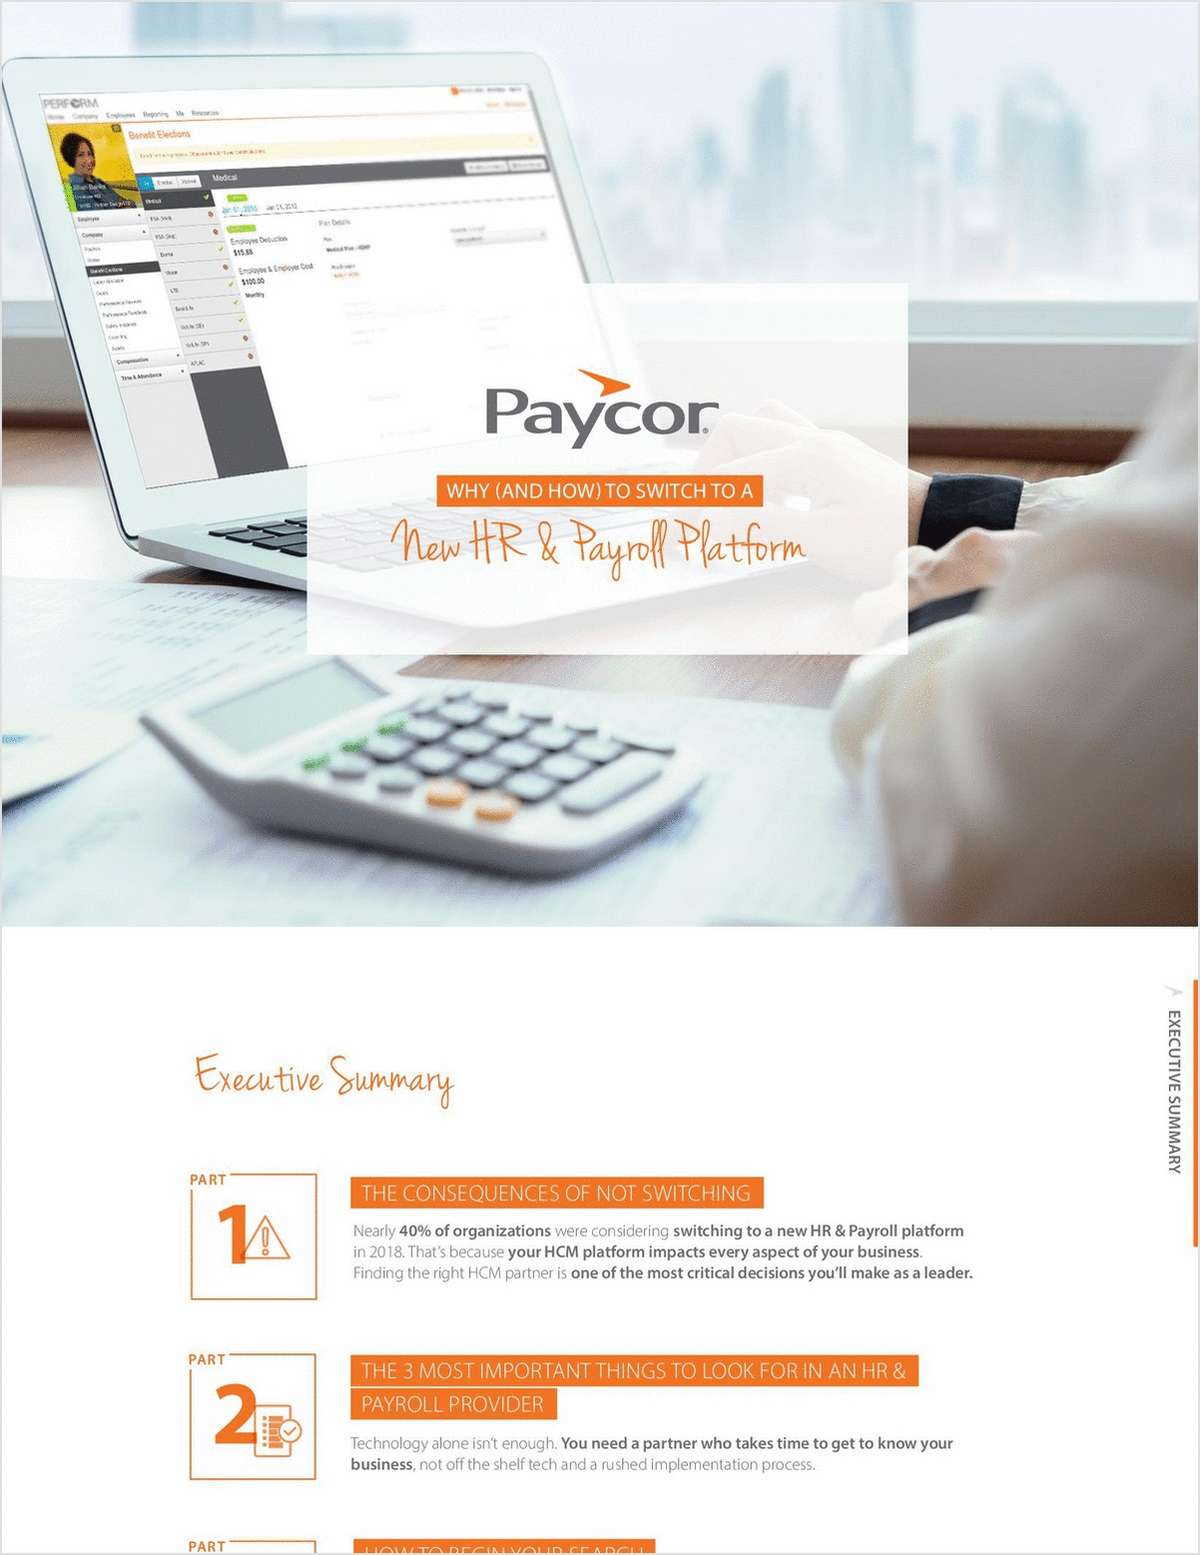 Why (and How) to Switch to a New HR & Payroll Platform